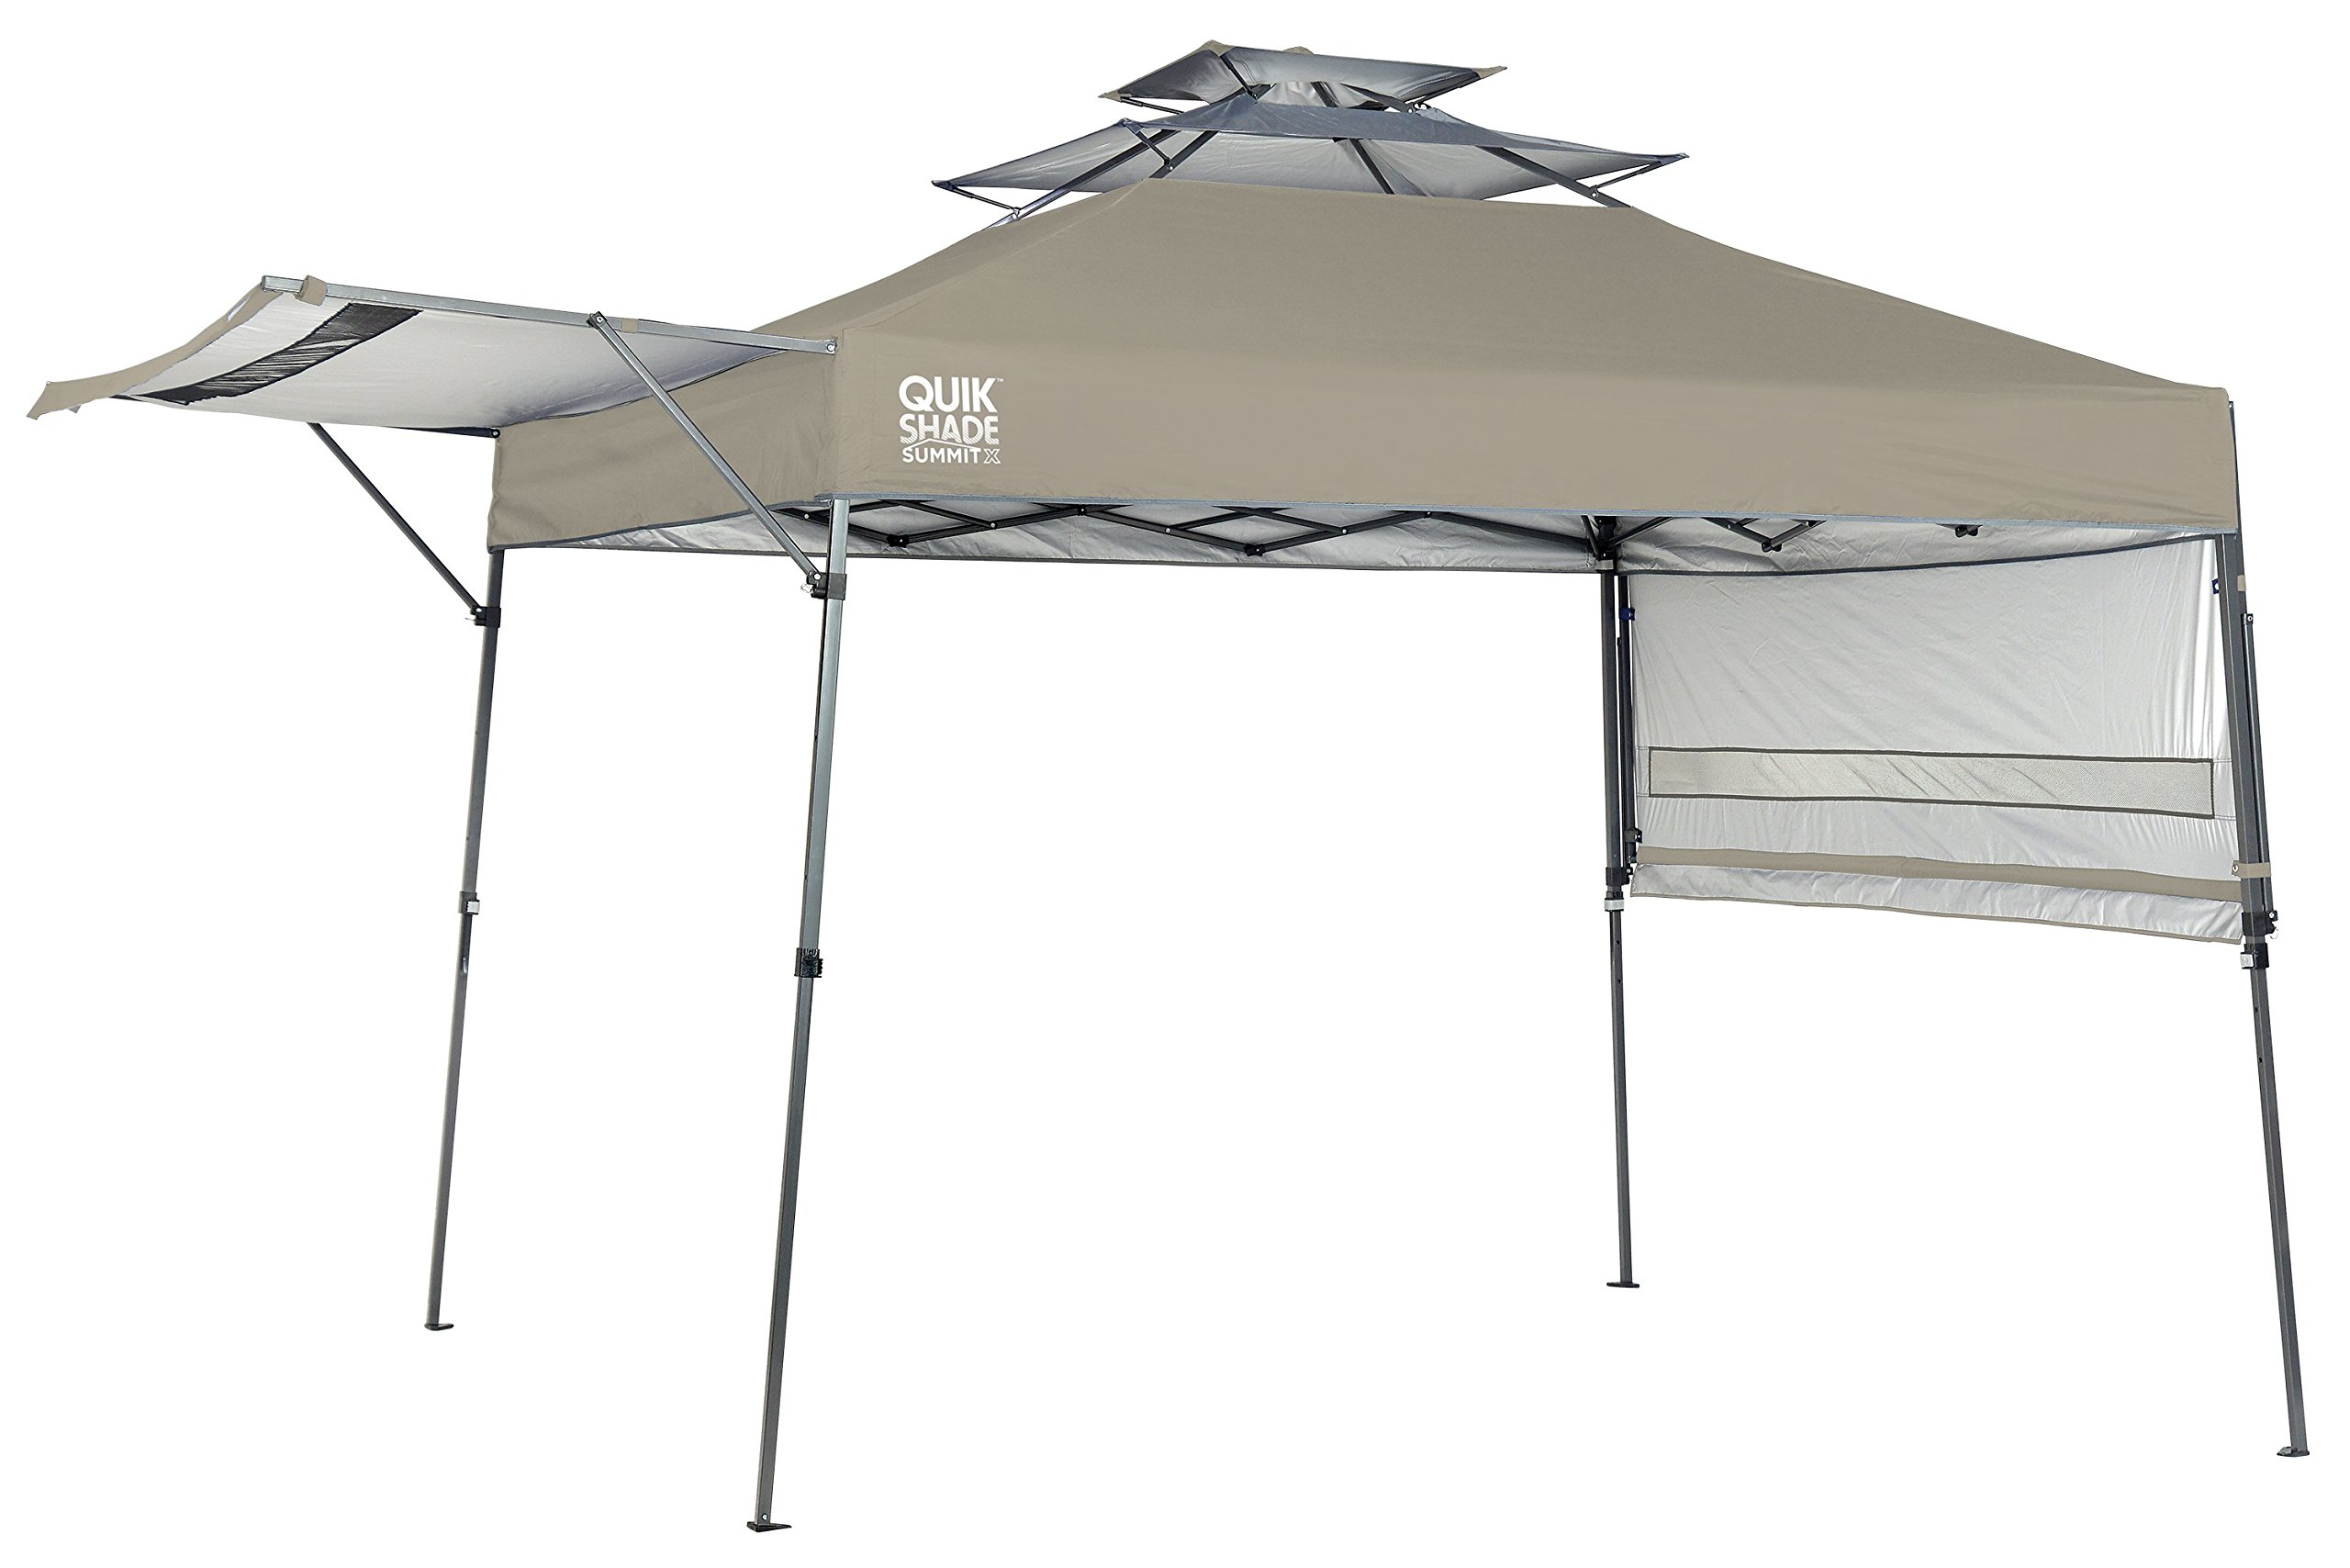 Quik Shade Summit 10 x 17-Foot Instant Canopy with Adjustable Dual Half Awnings, 170 Square Feet of Shade for 15 People - Taupe